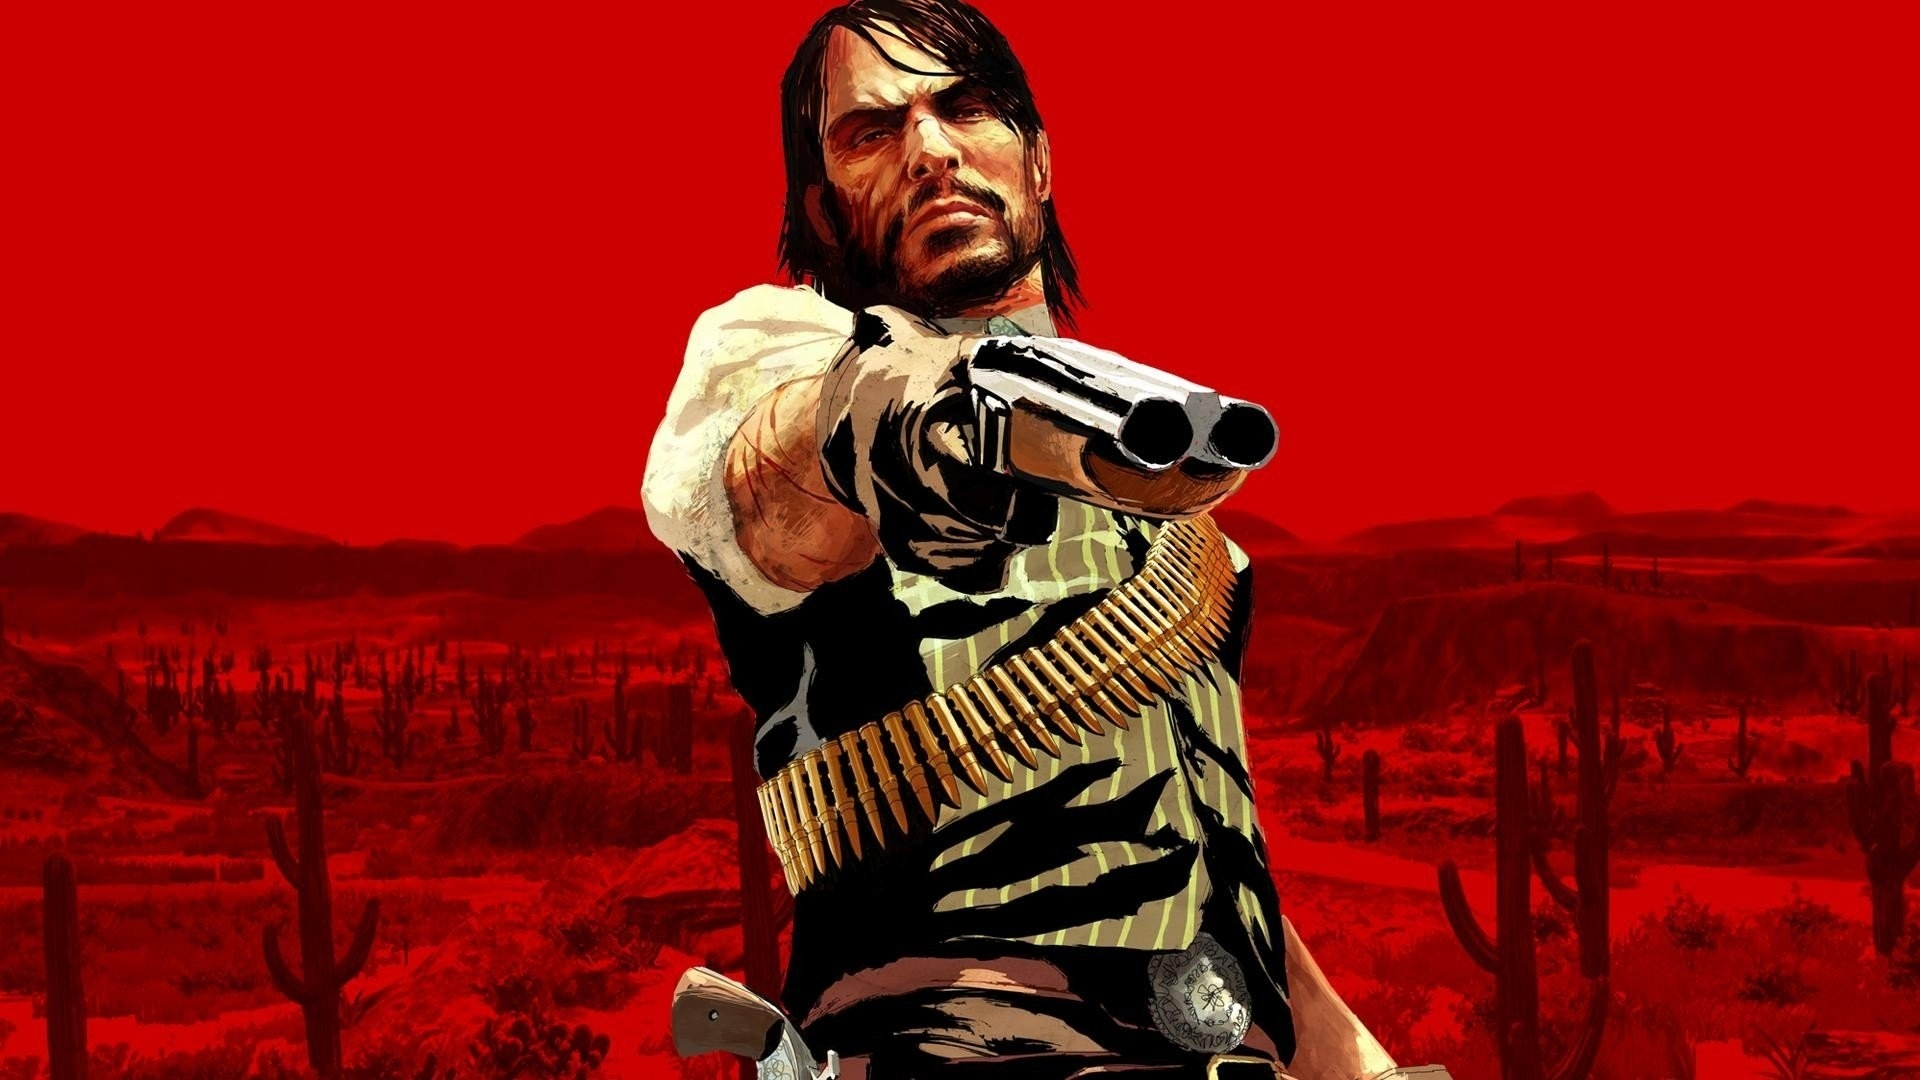 10 New Red Dead Redemption Wallpaper 1920X1080 FULL HD 1920×1080 For PC Desktop